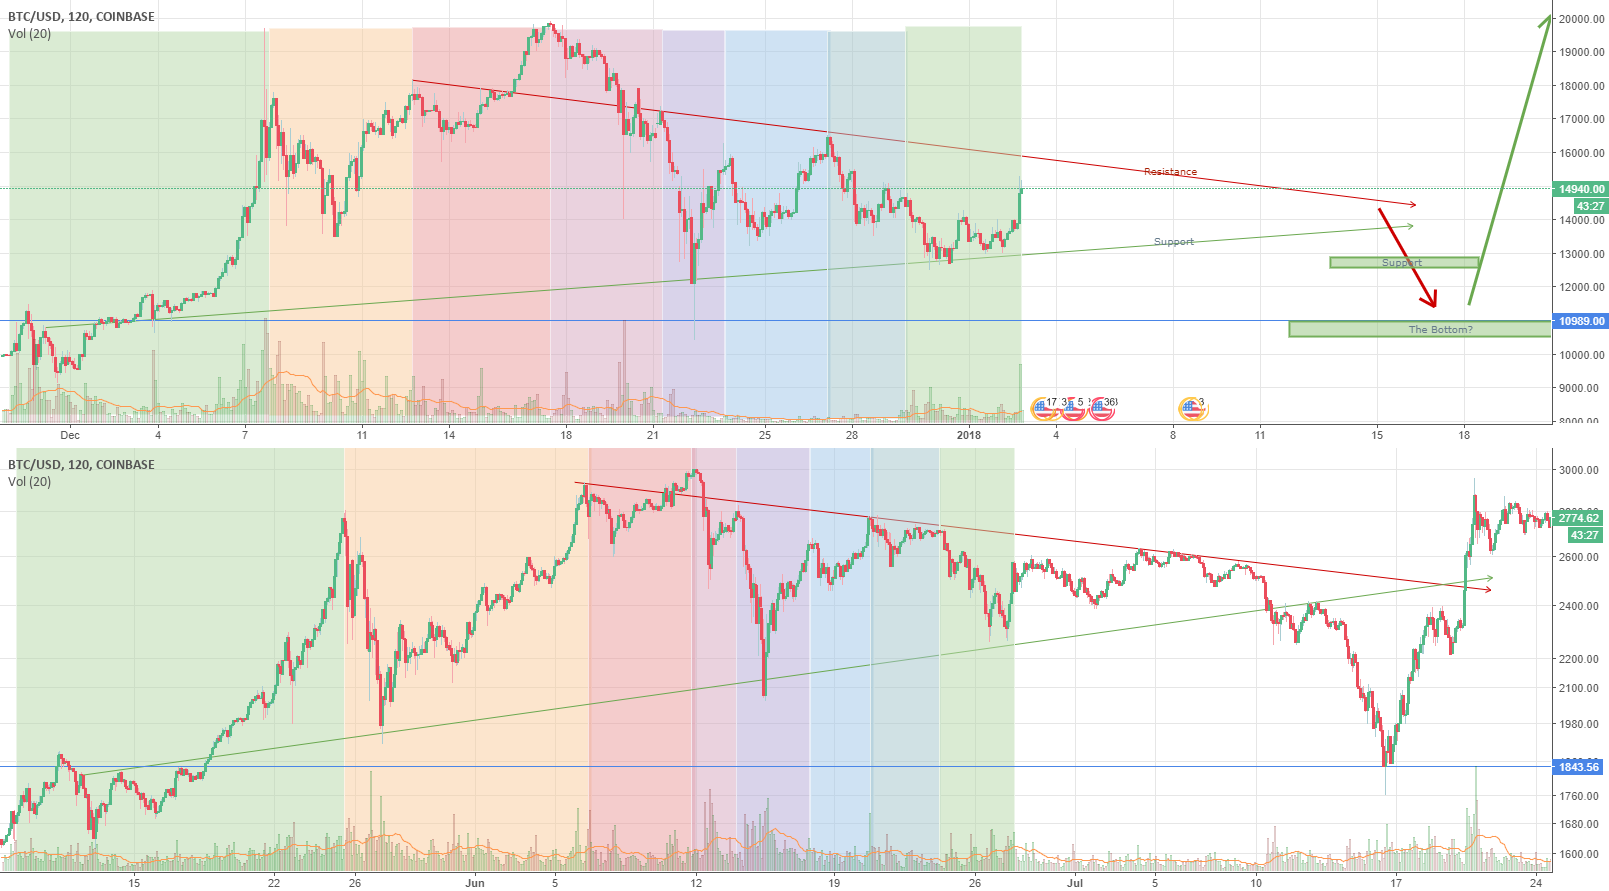 BTC locked in with June bear market. Will we see 10k BTC again?